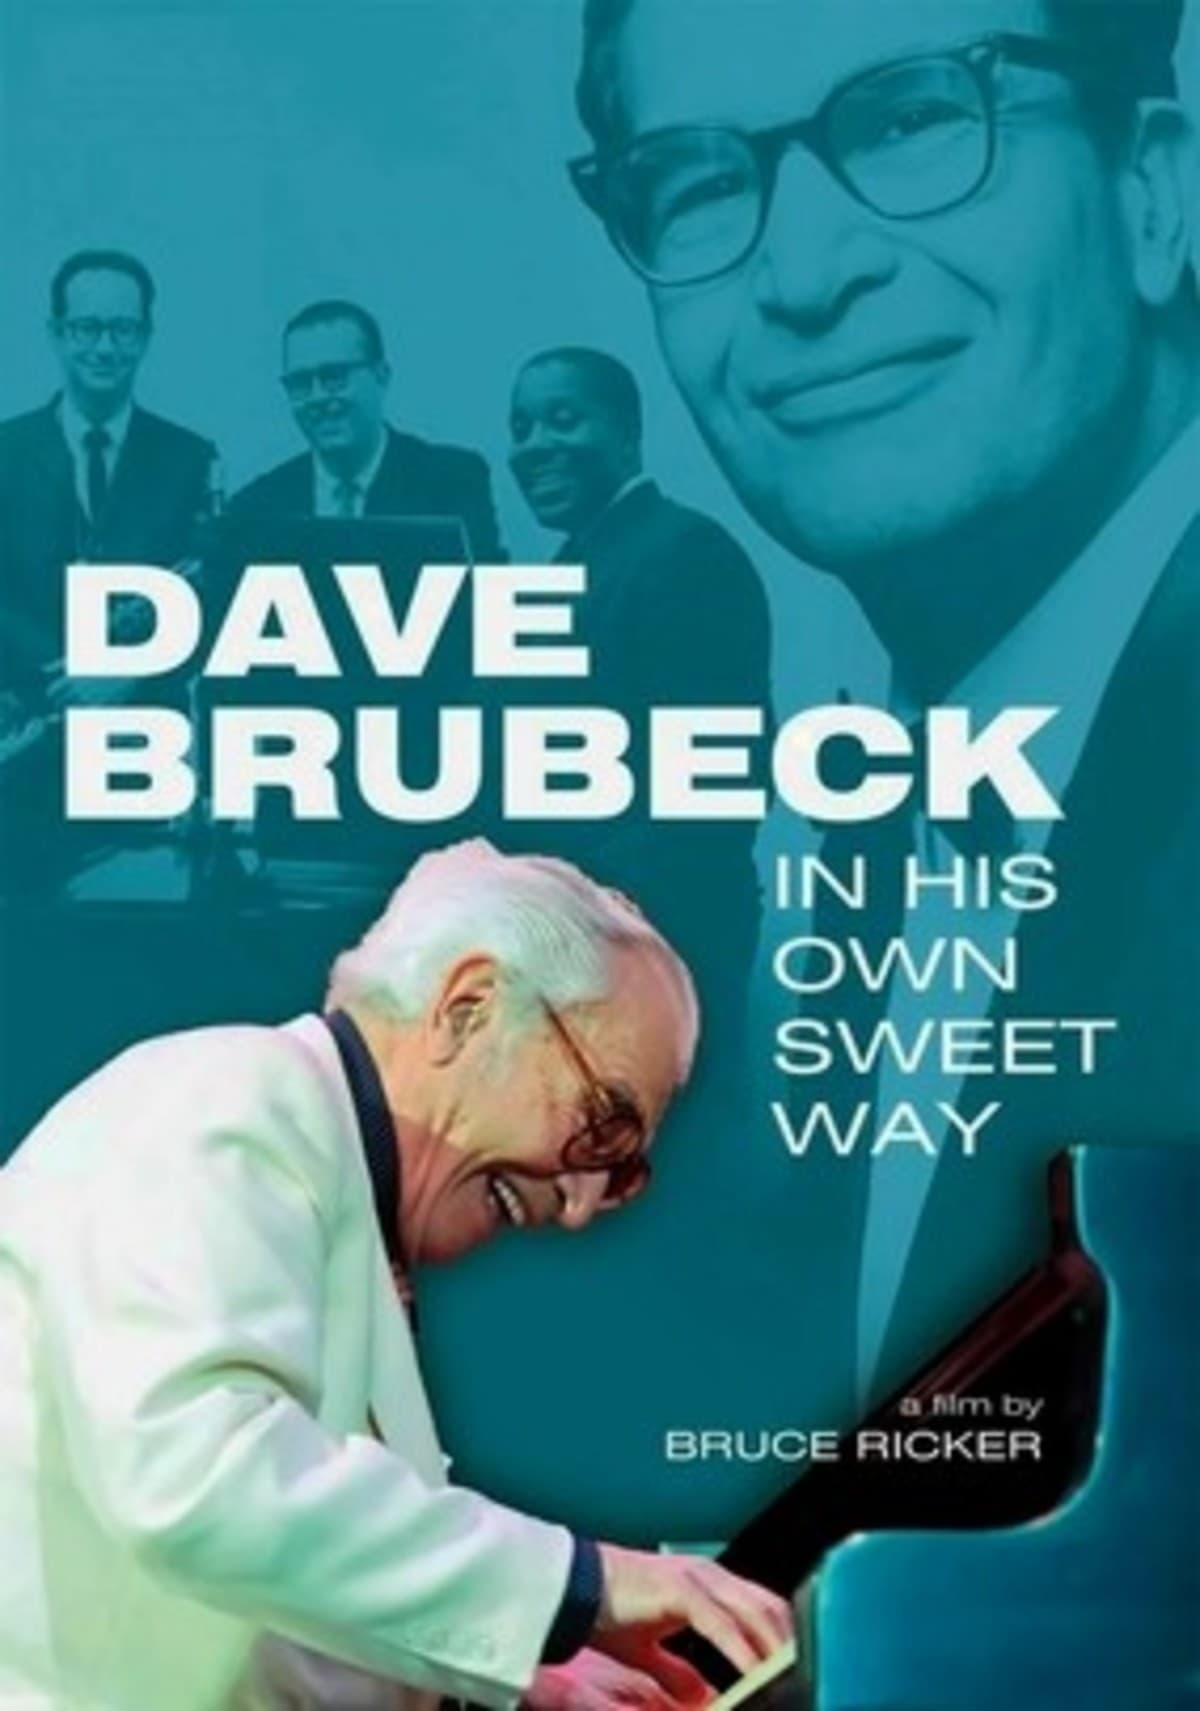 Caratula de DAVE BRUBECK: IN HIS OWN SWEET WAY (Dave Brubeck: In His Own Sweet Way)